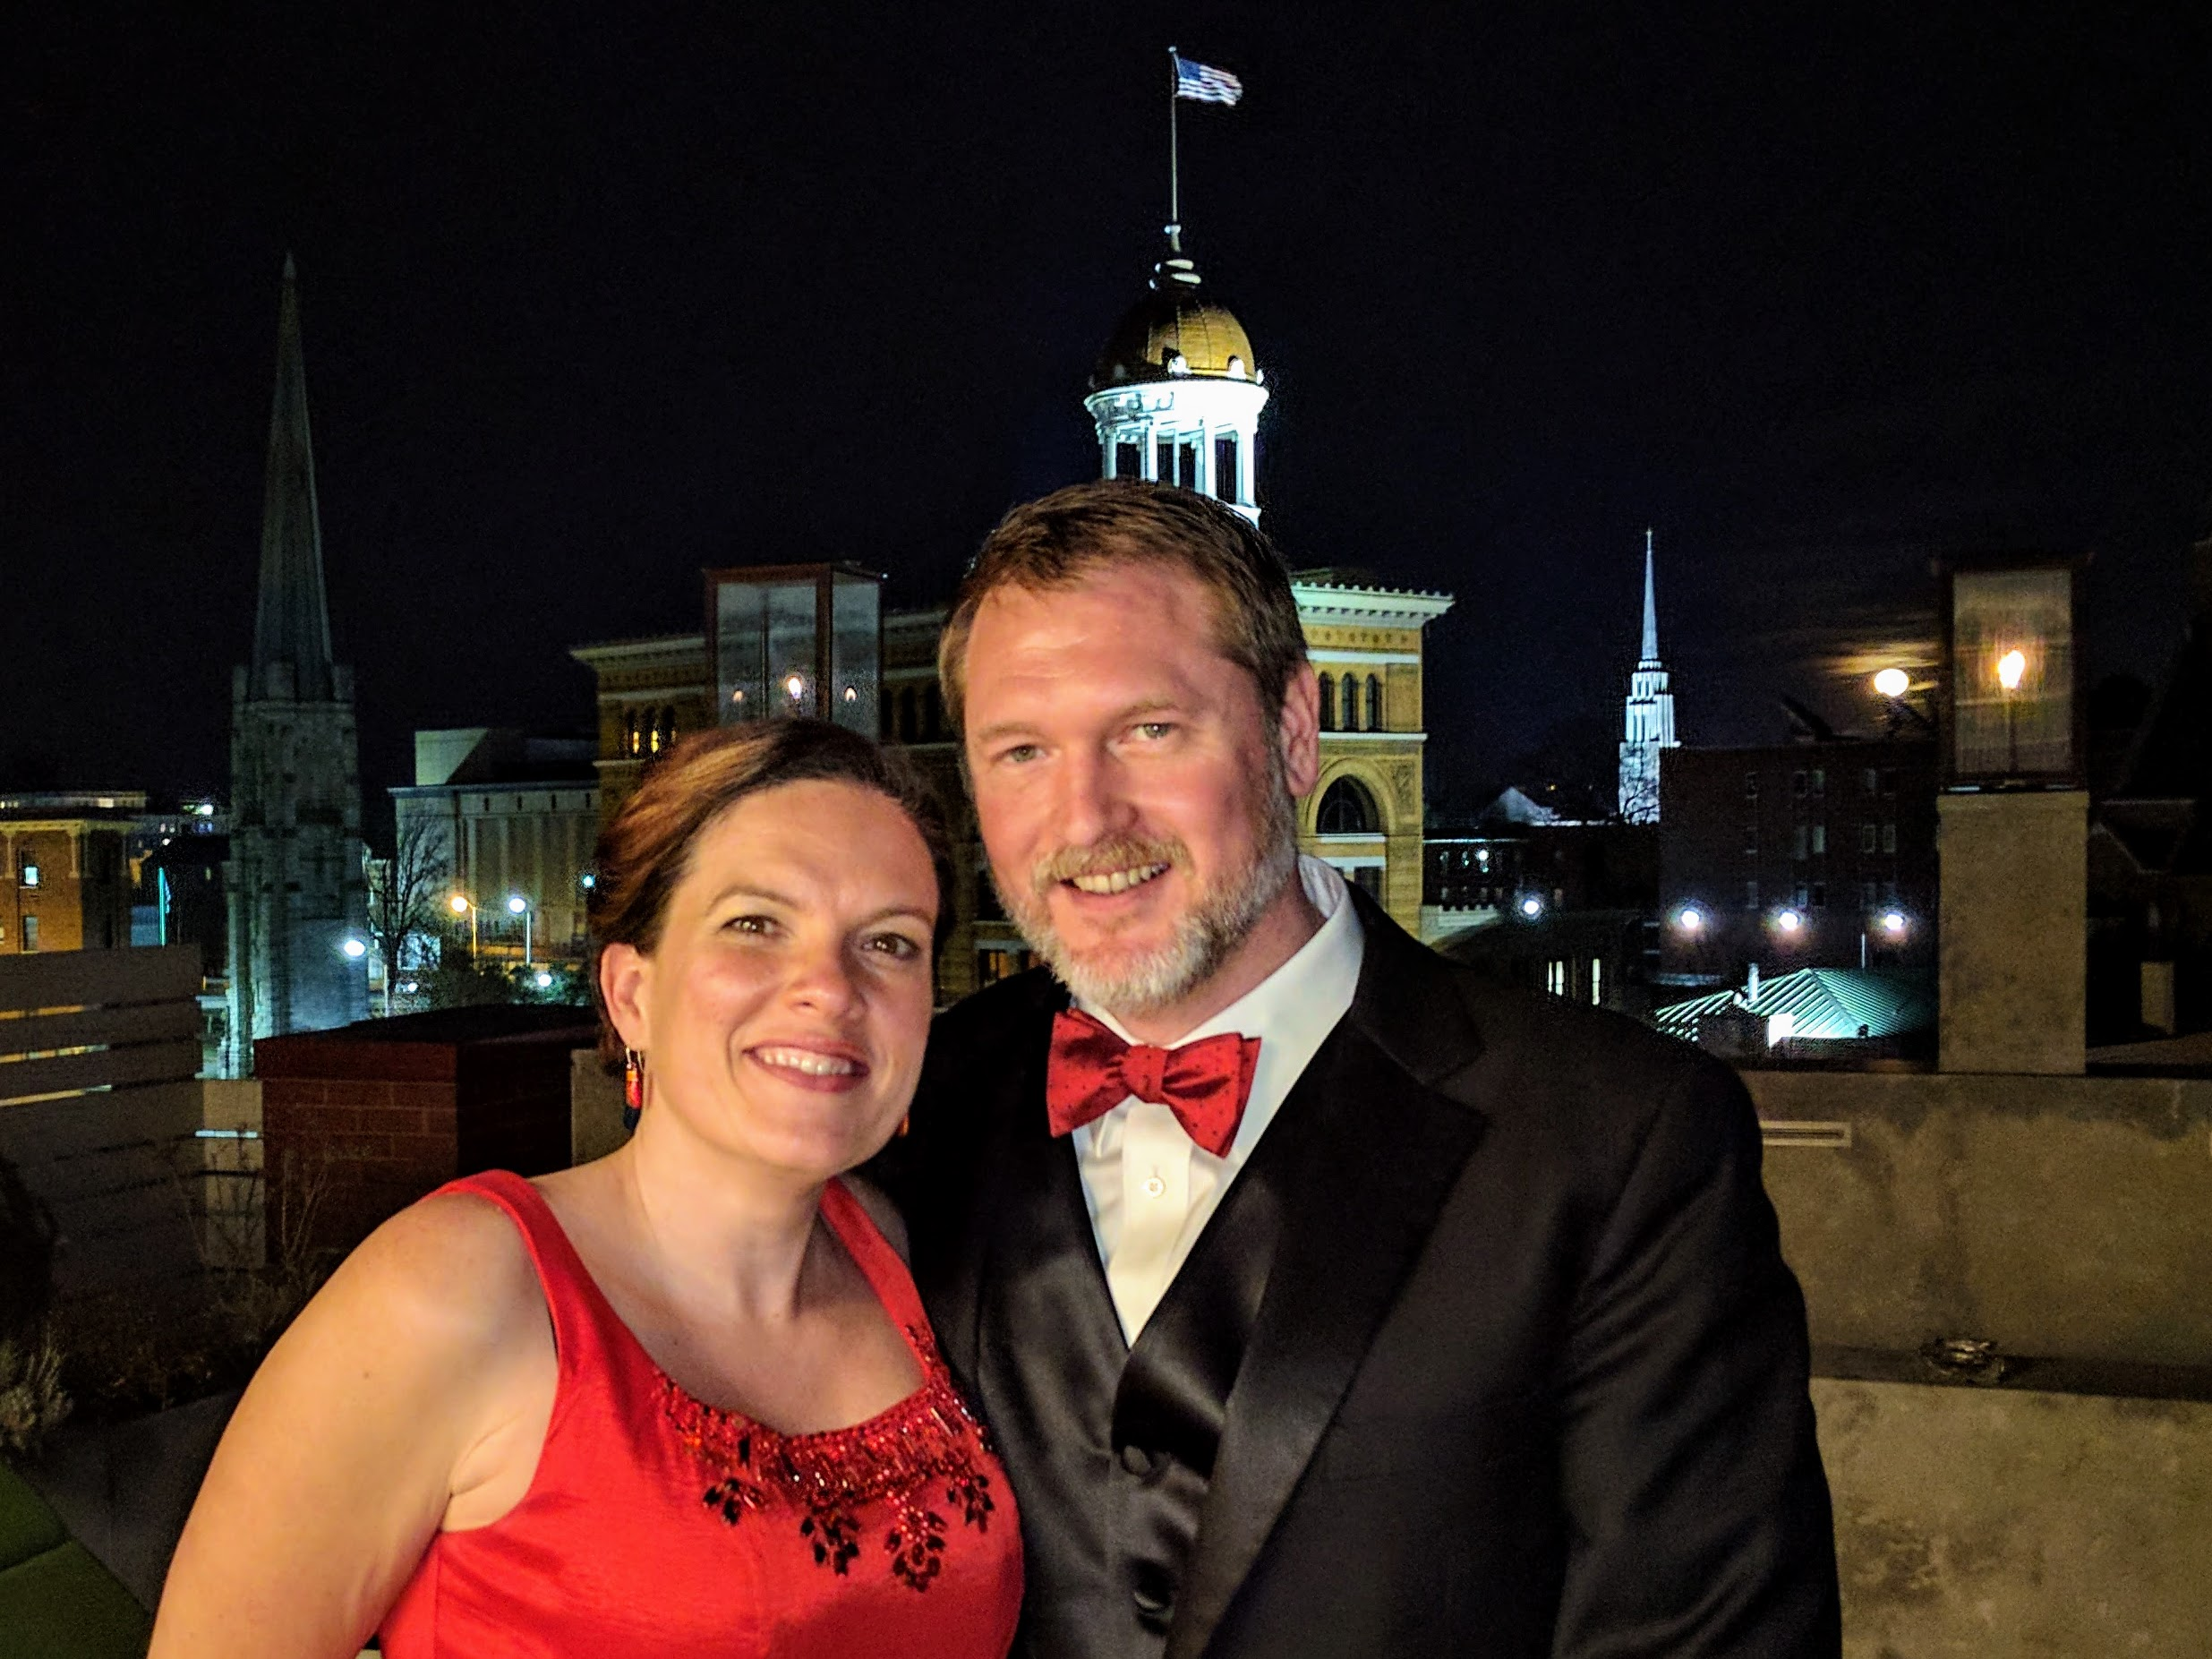 Geoffrey McGowen & wife Olivia pose with the Dome Building behind them.